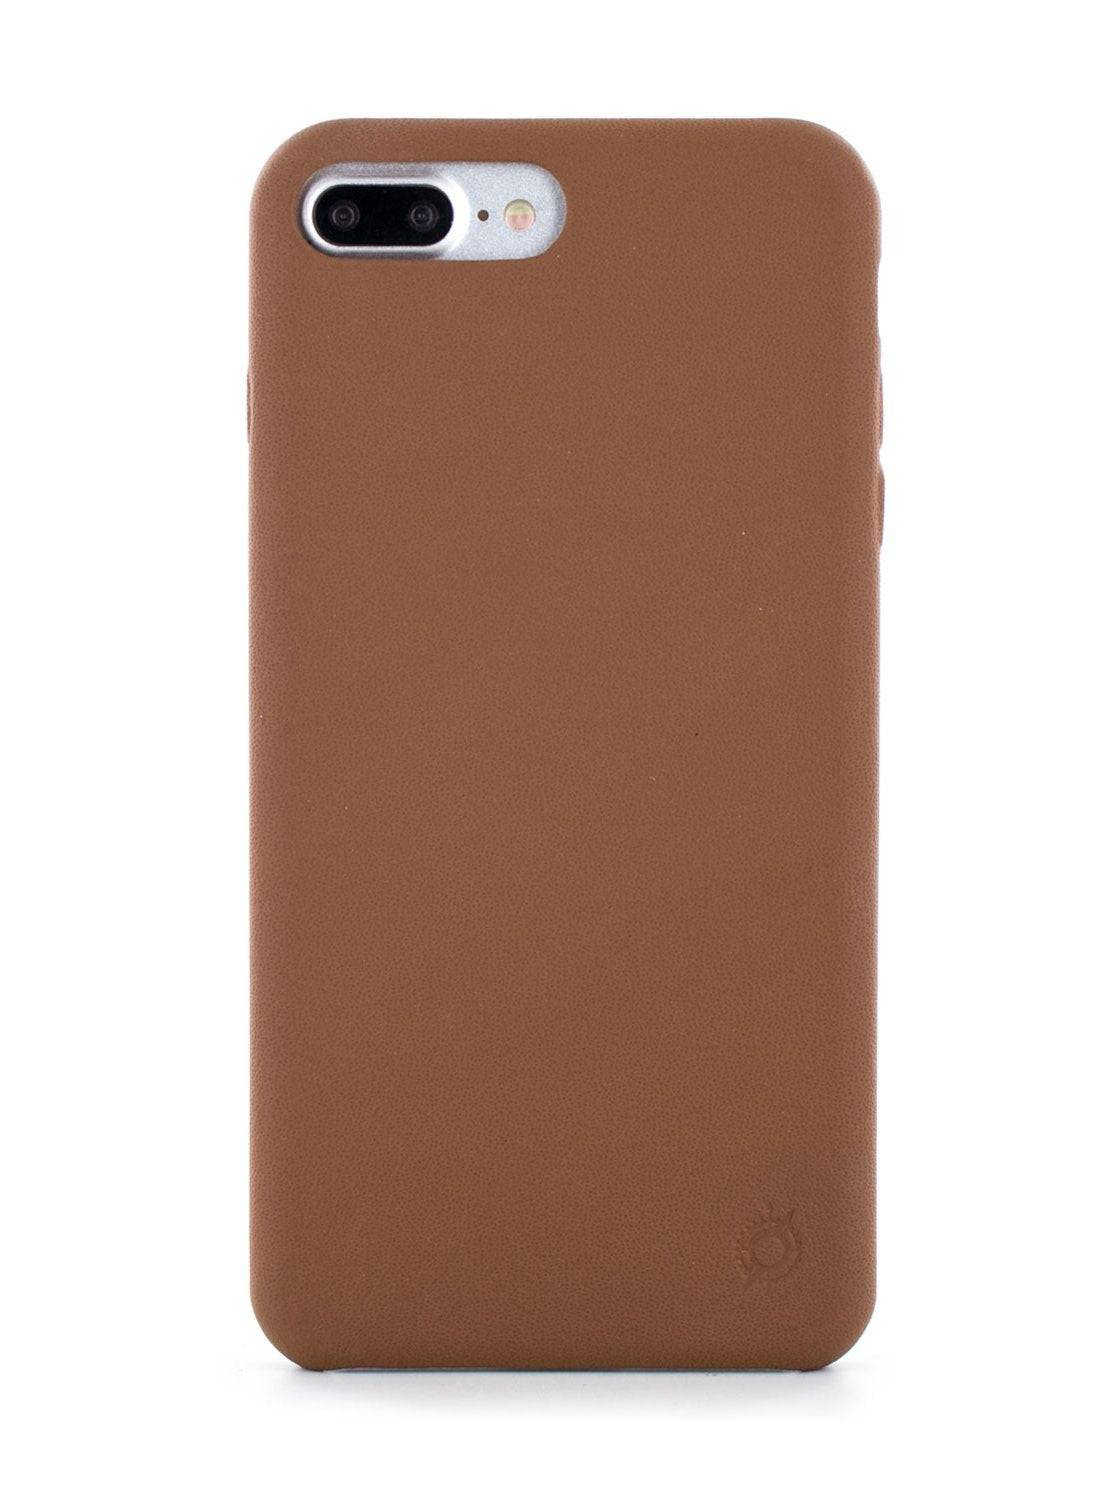 Greenwich AEON Luxury Leather Back Shell for iPhone 8 Plus / 7 Plus In Saddle (Brown)